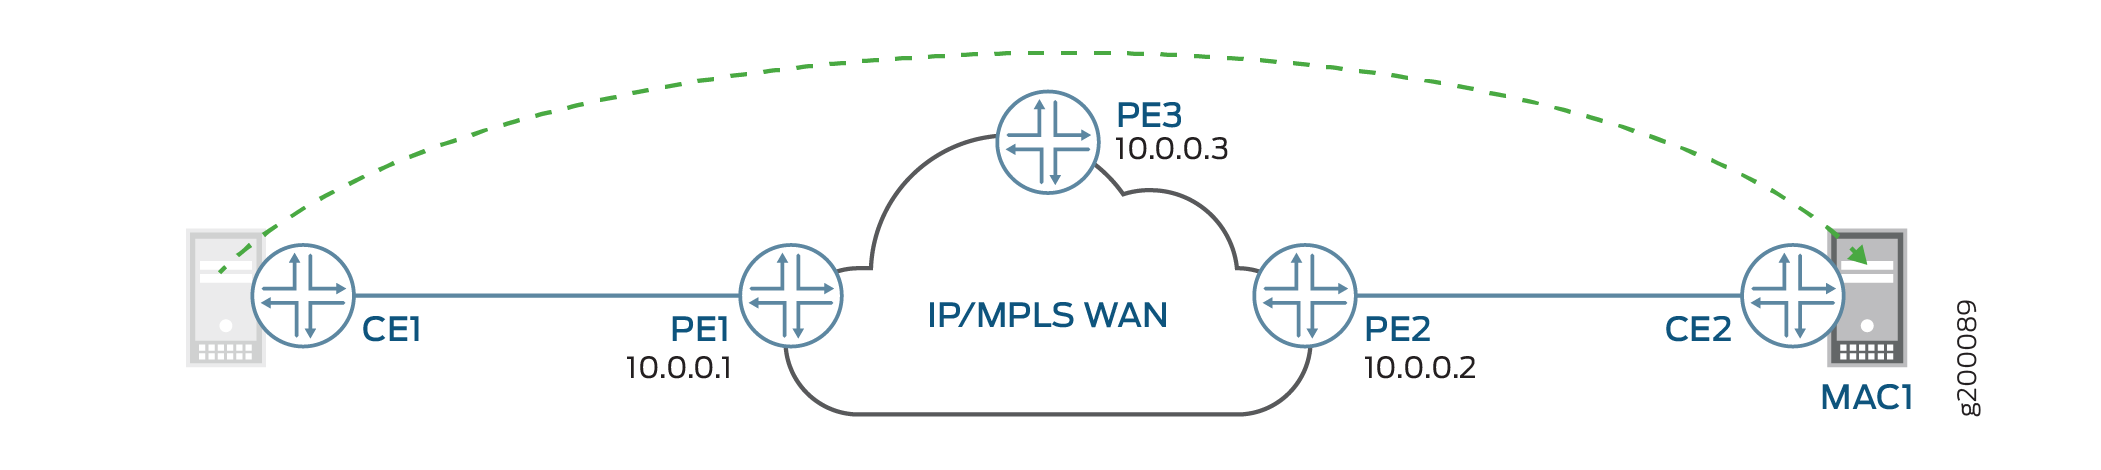 MAC Mobility in an EVPN Network